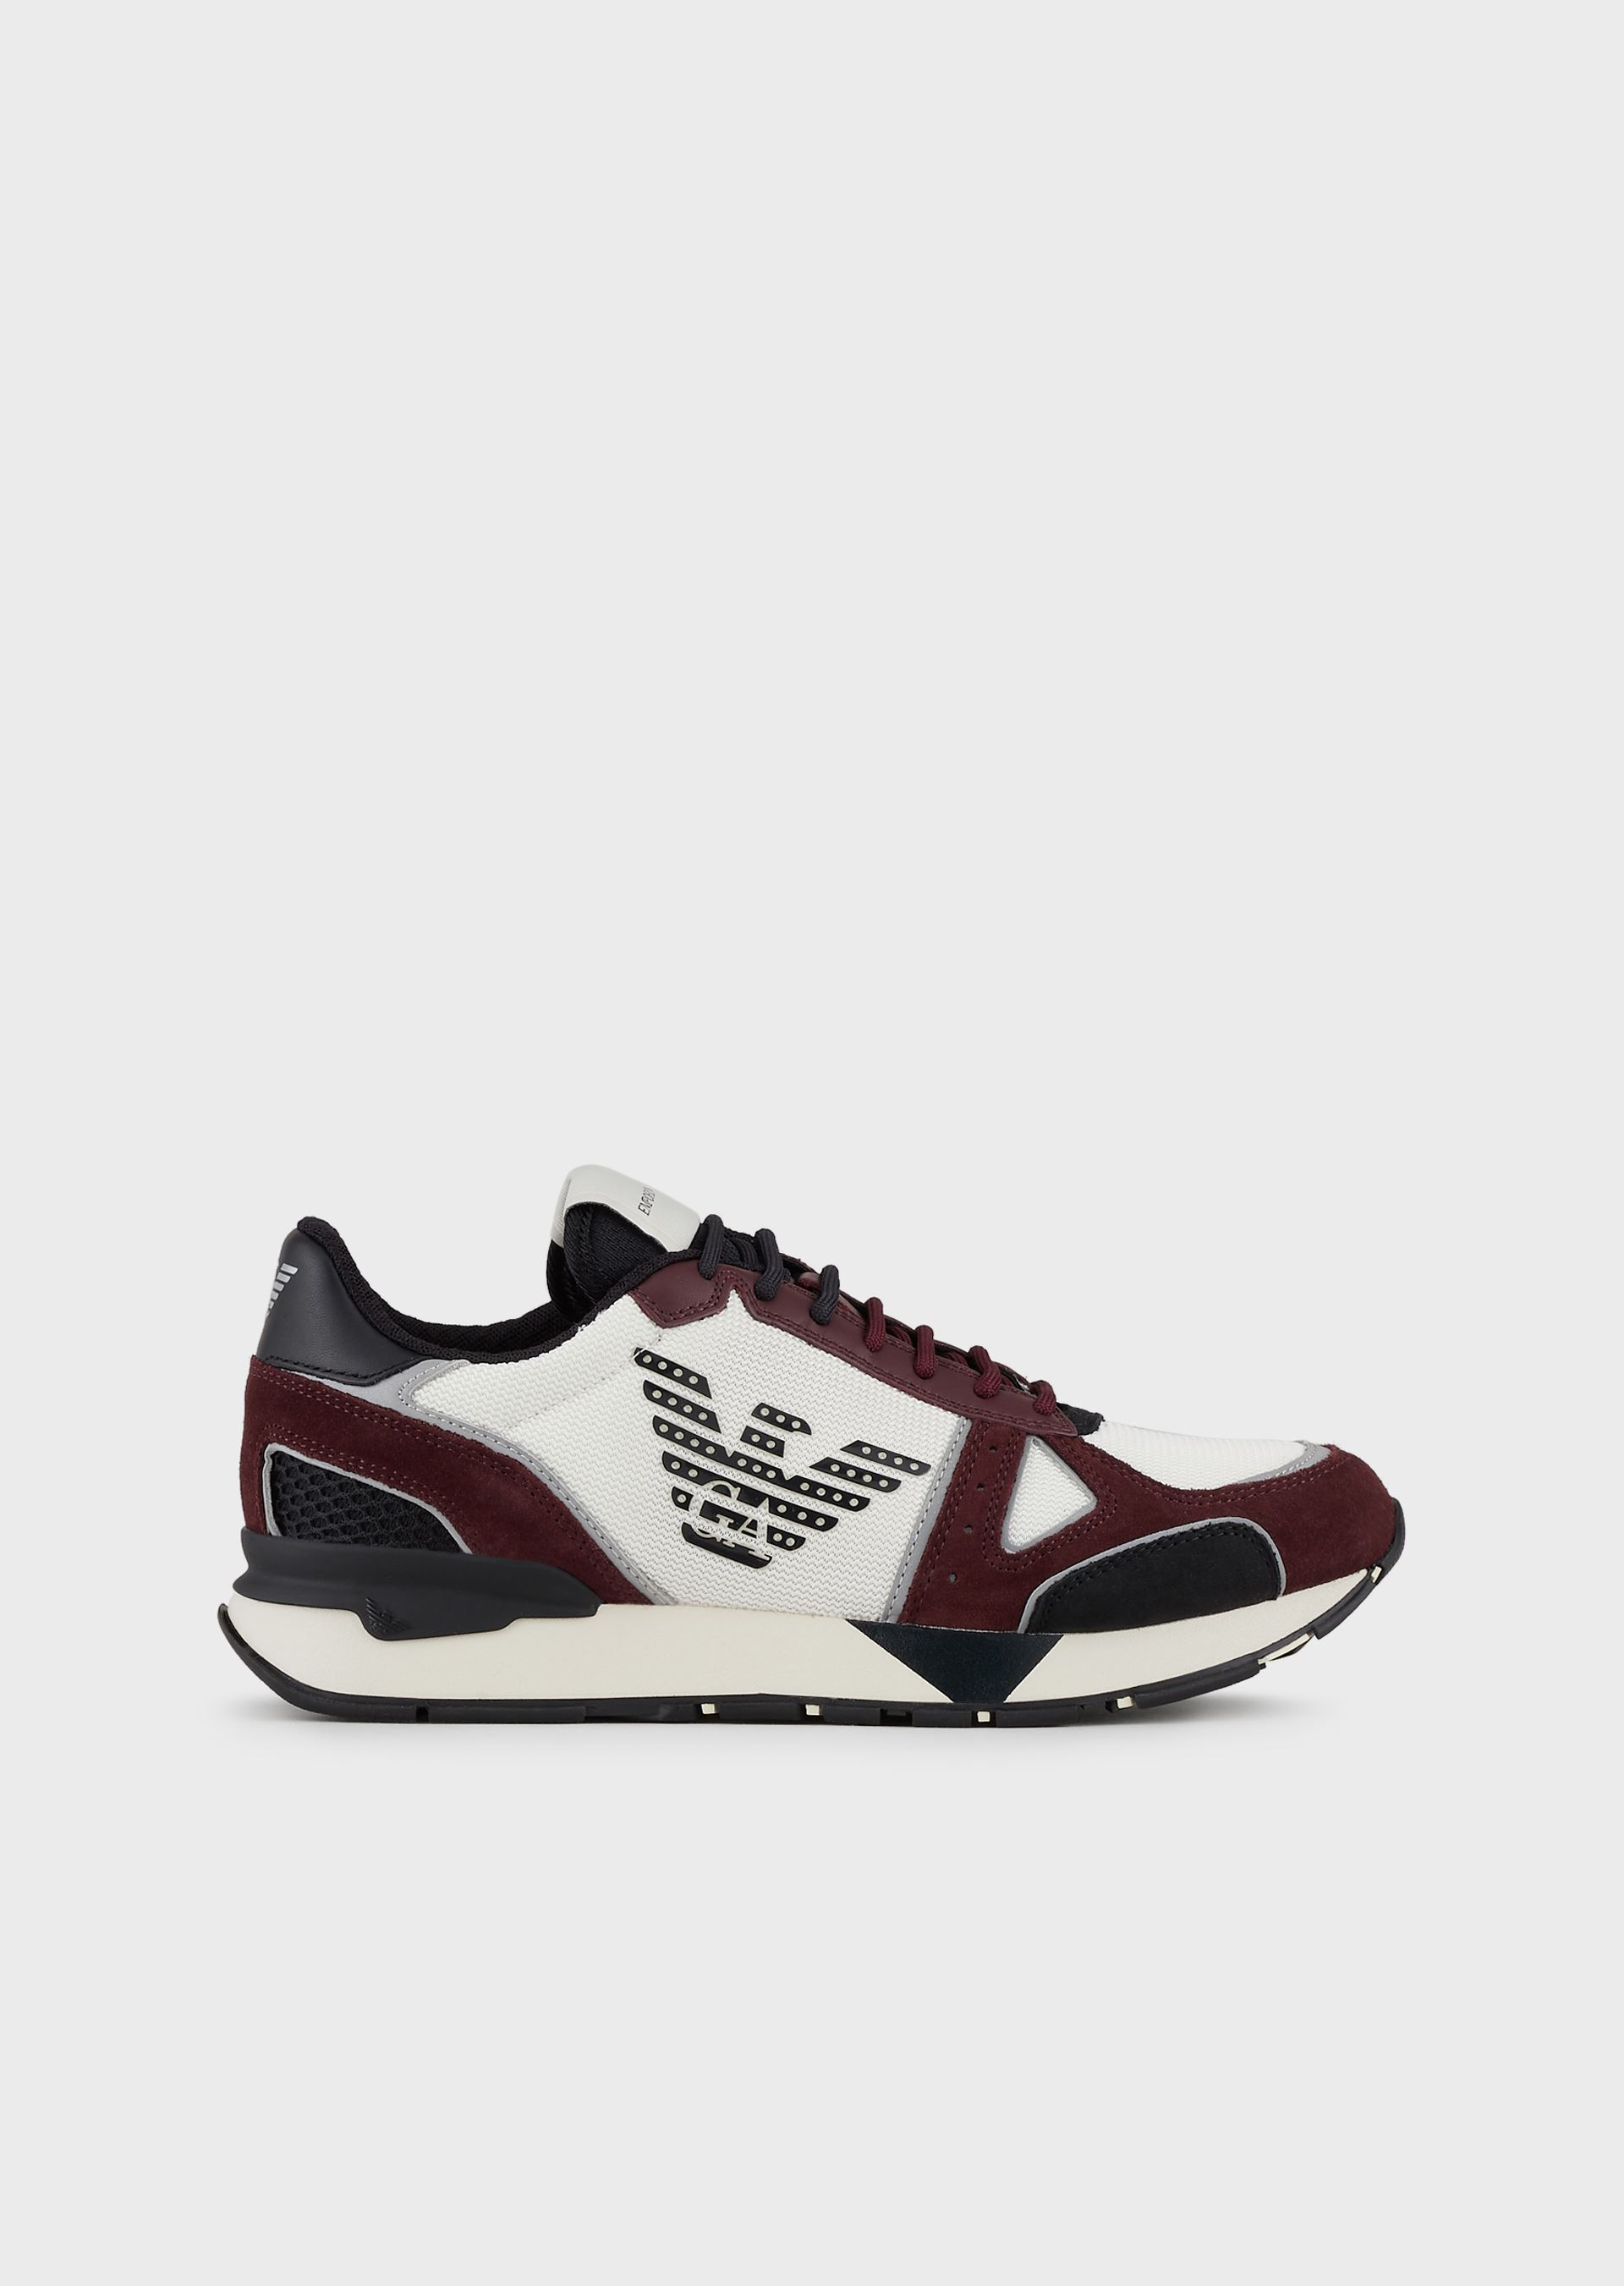 EMPORIO ARMANI Suede sneakers with mesh-nubuck inserts and side eagle